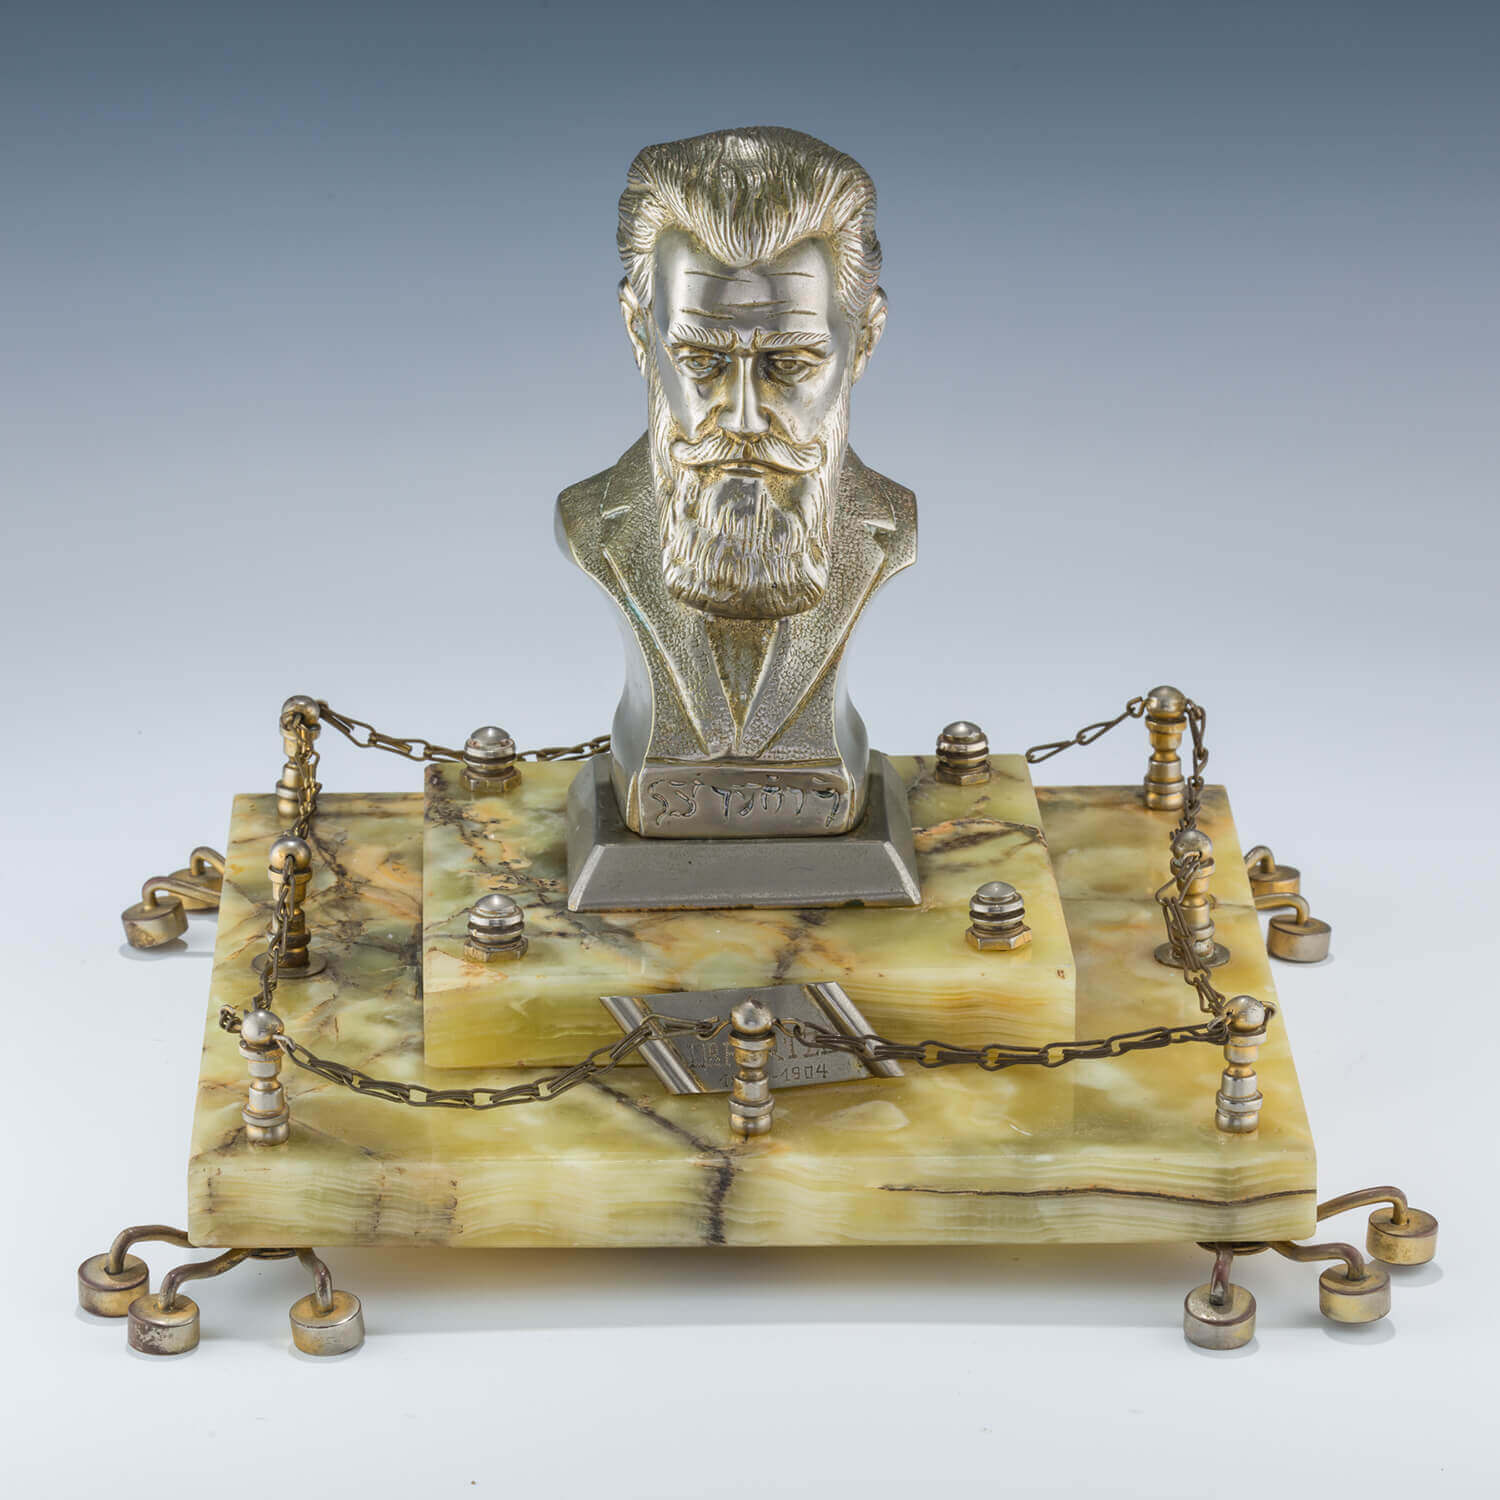 127. AN IMPORTANT MARBLE MOUNTED BRASS SCULPTURE OF THEODOR HERZL